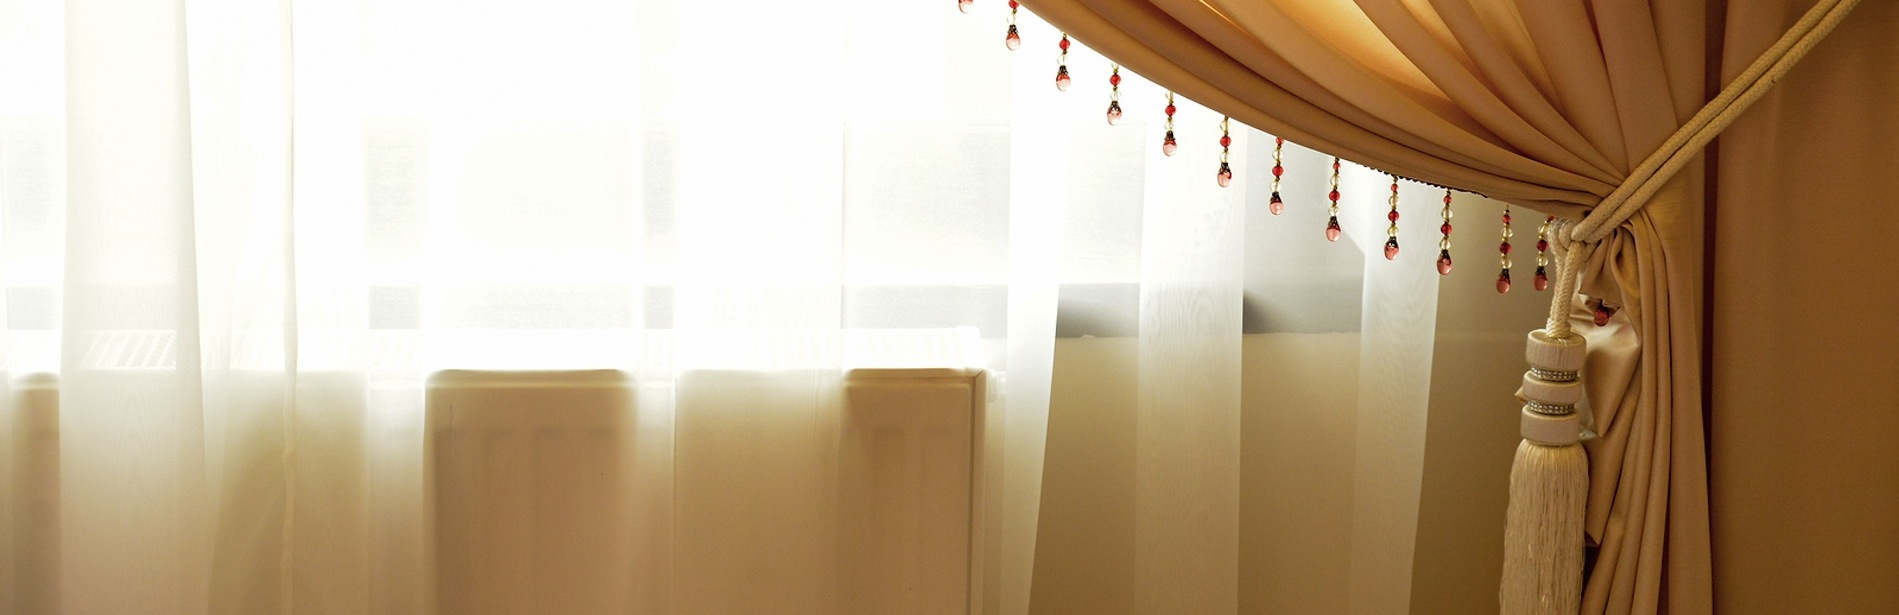 bigstock-Beige-Window-Curtain-With-Crys-85377629_resized.jpg